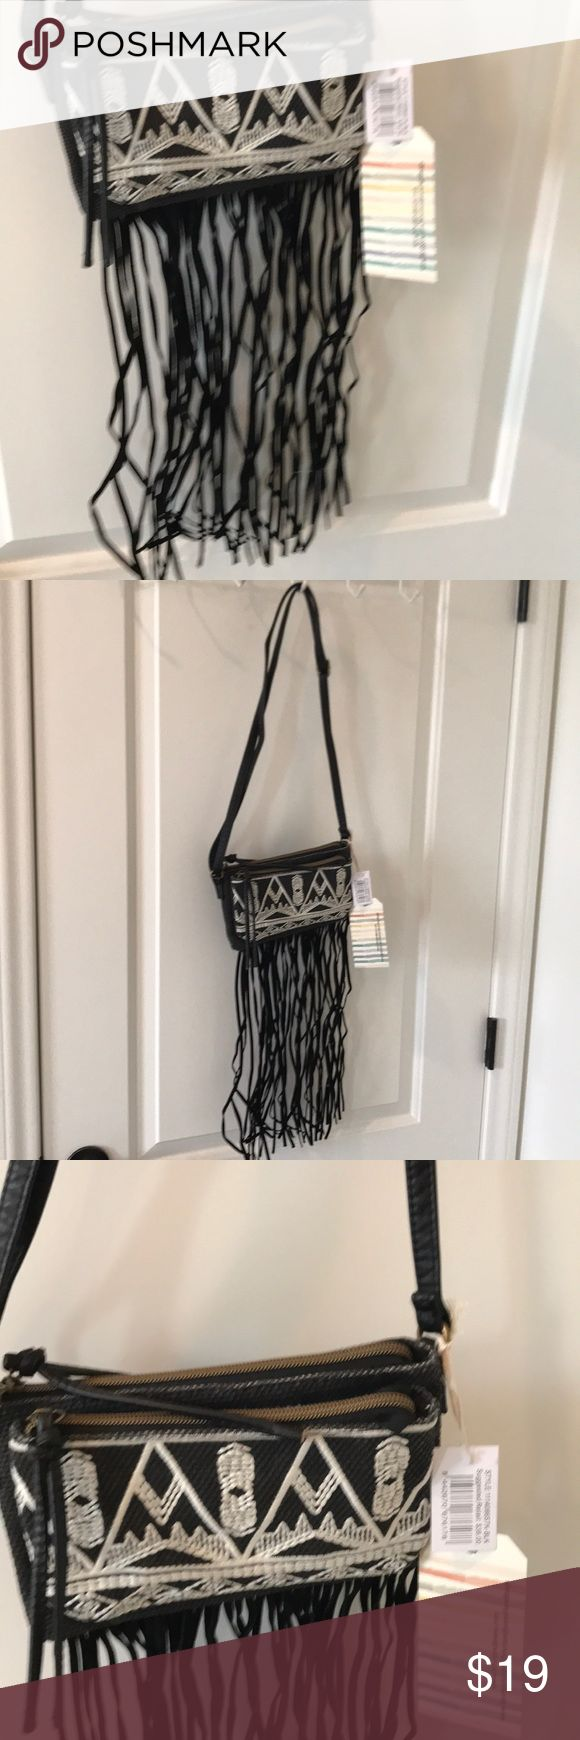 T-Shirt & Jeans crossover bag with black fringe T-Shirt & Jeans crossover bag with black fringe along bottom NWT Original price $49 9 X 6 inches T-Shirt & Jeans Bags Crossbody Bags